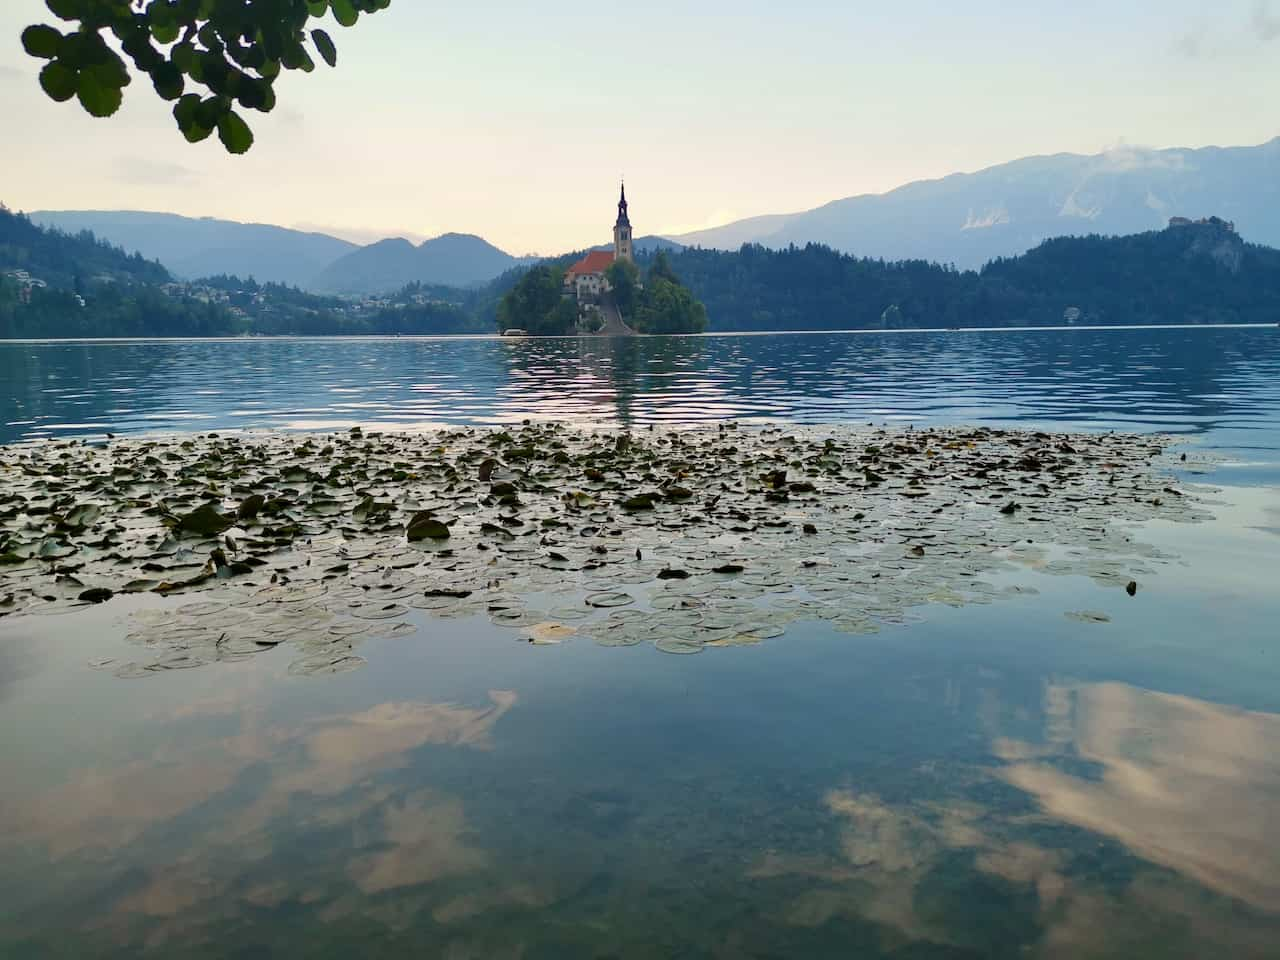 Views of the church island in Bled with water lilies